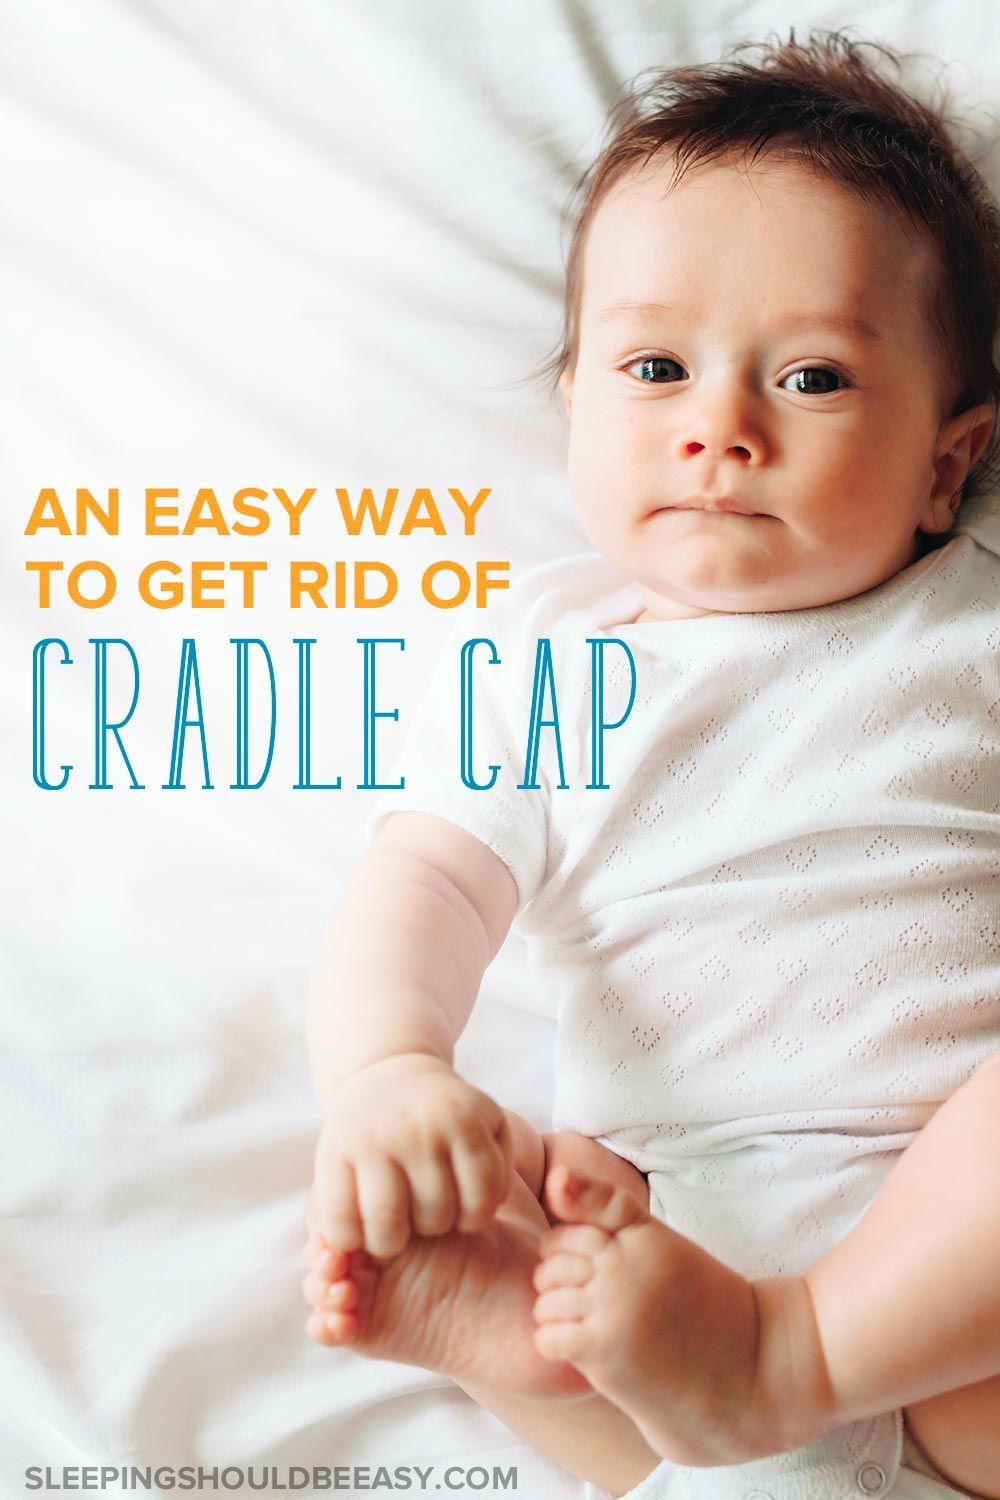 We develop musical abilities of the baby ... from the cradle